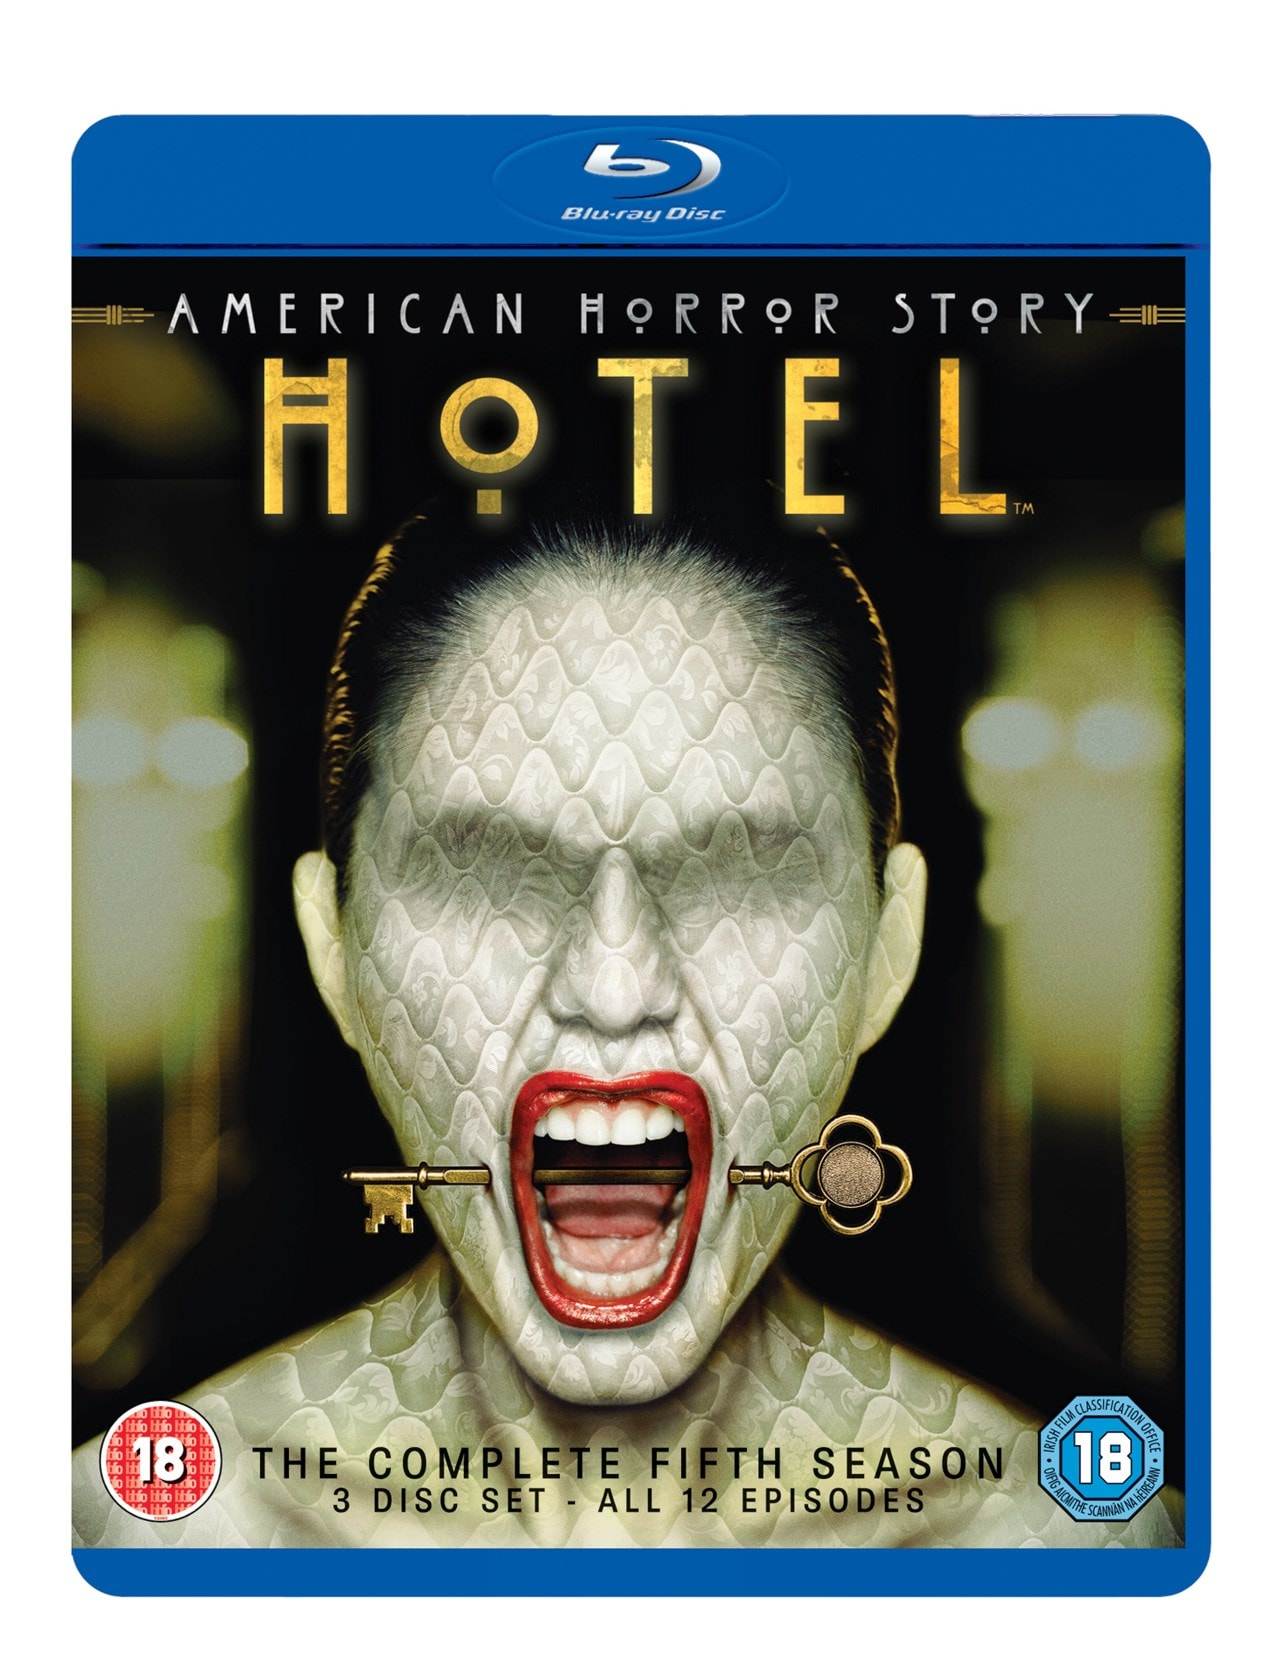 American Horror Story: Hotel - The Complete Fifth Season - 1